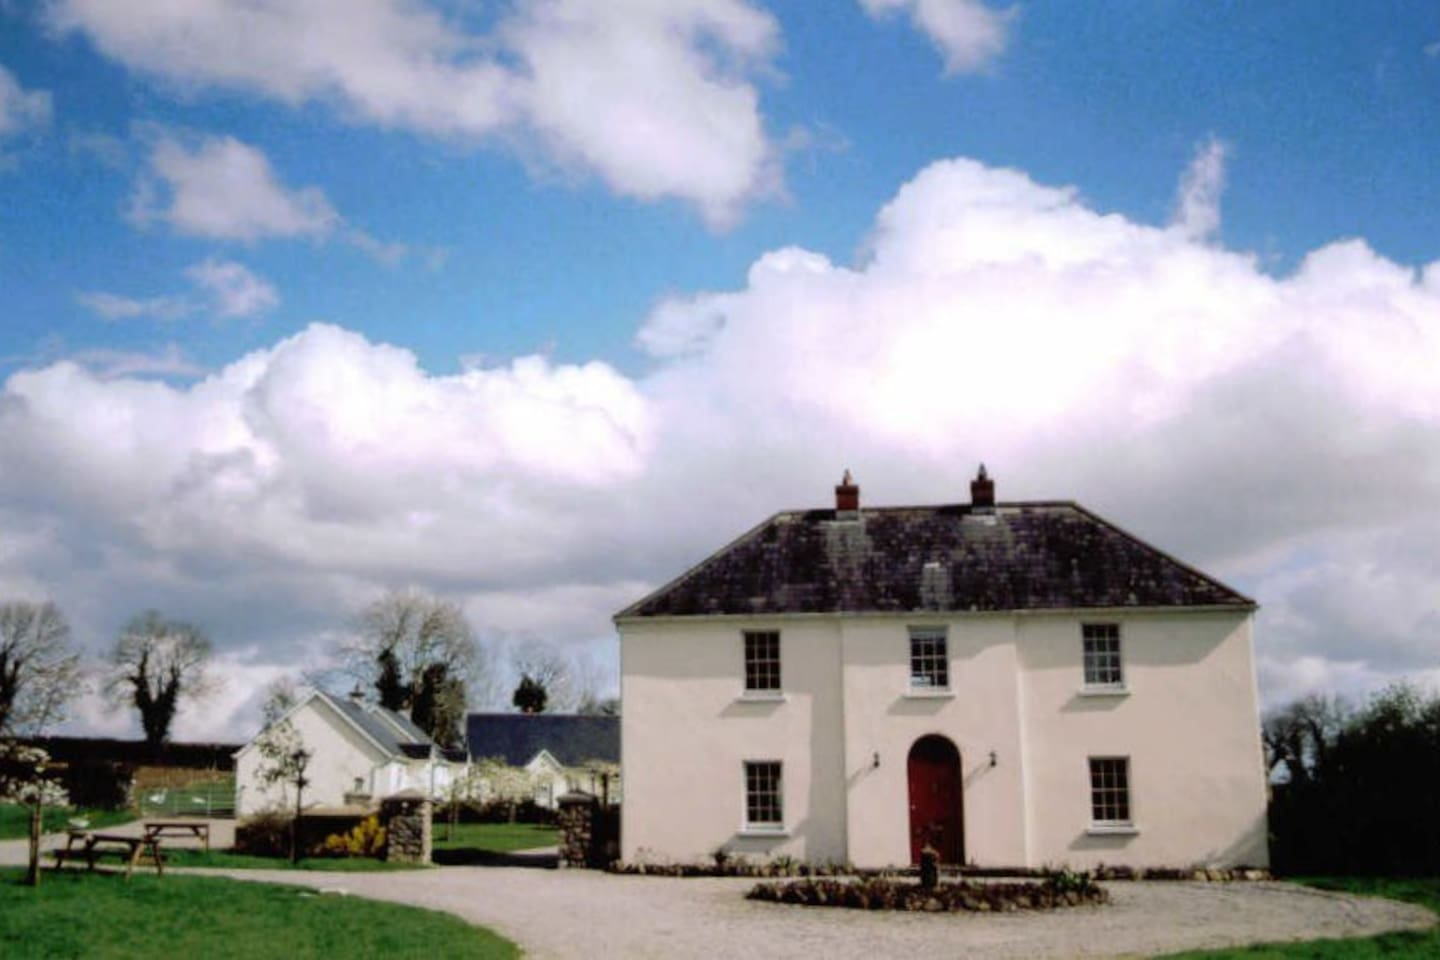 Croan House and Croan Cottages in beautiful county Kilkenny, Ireland